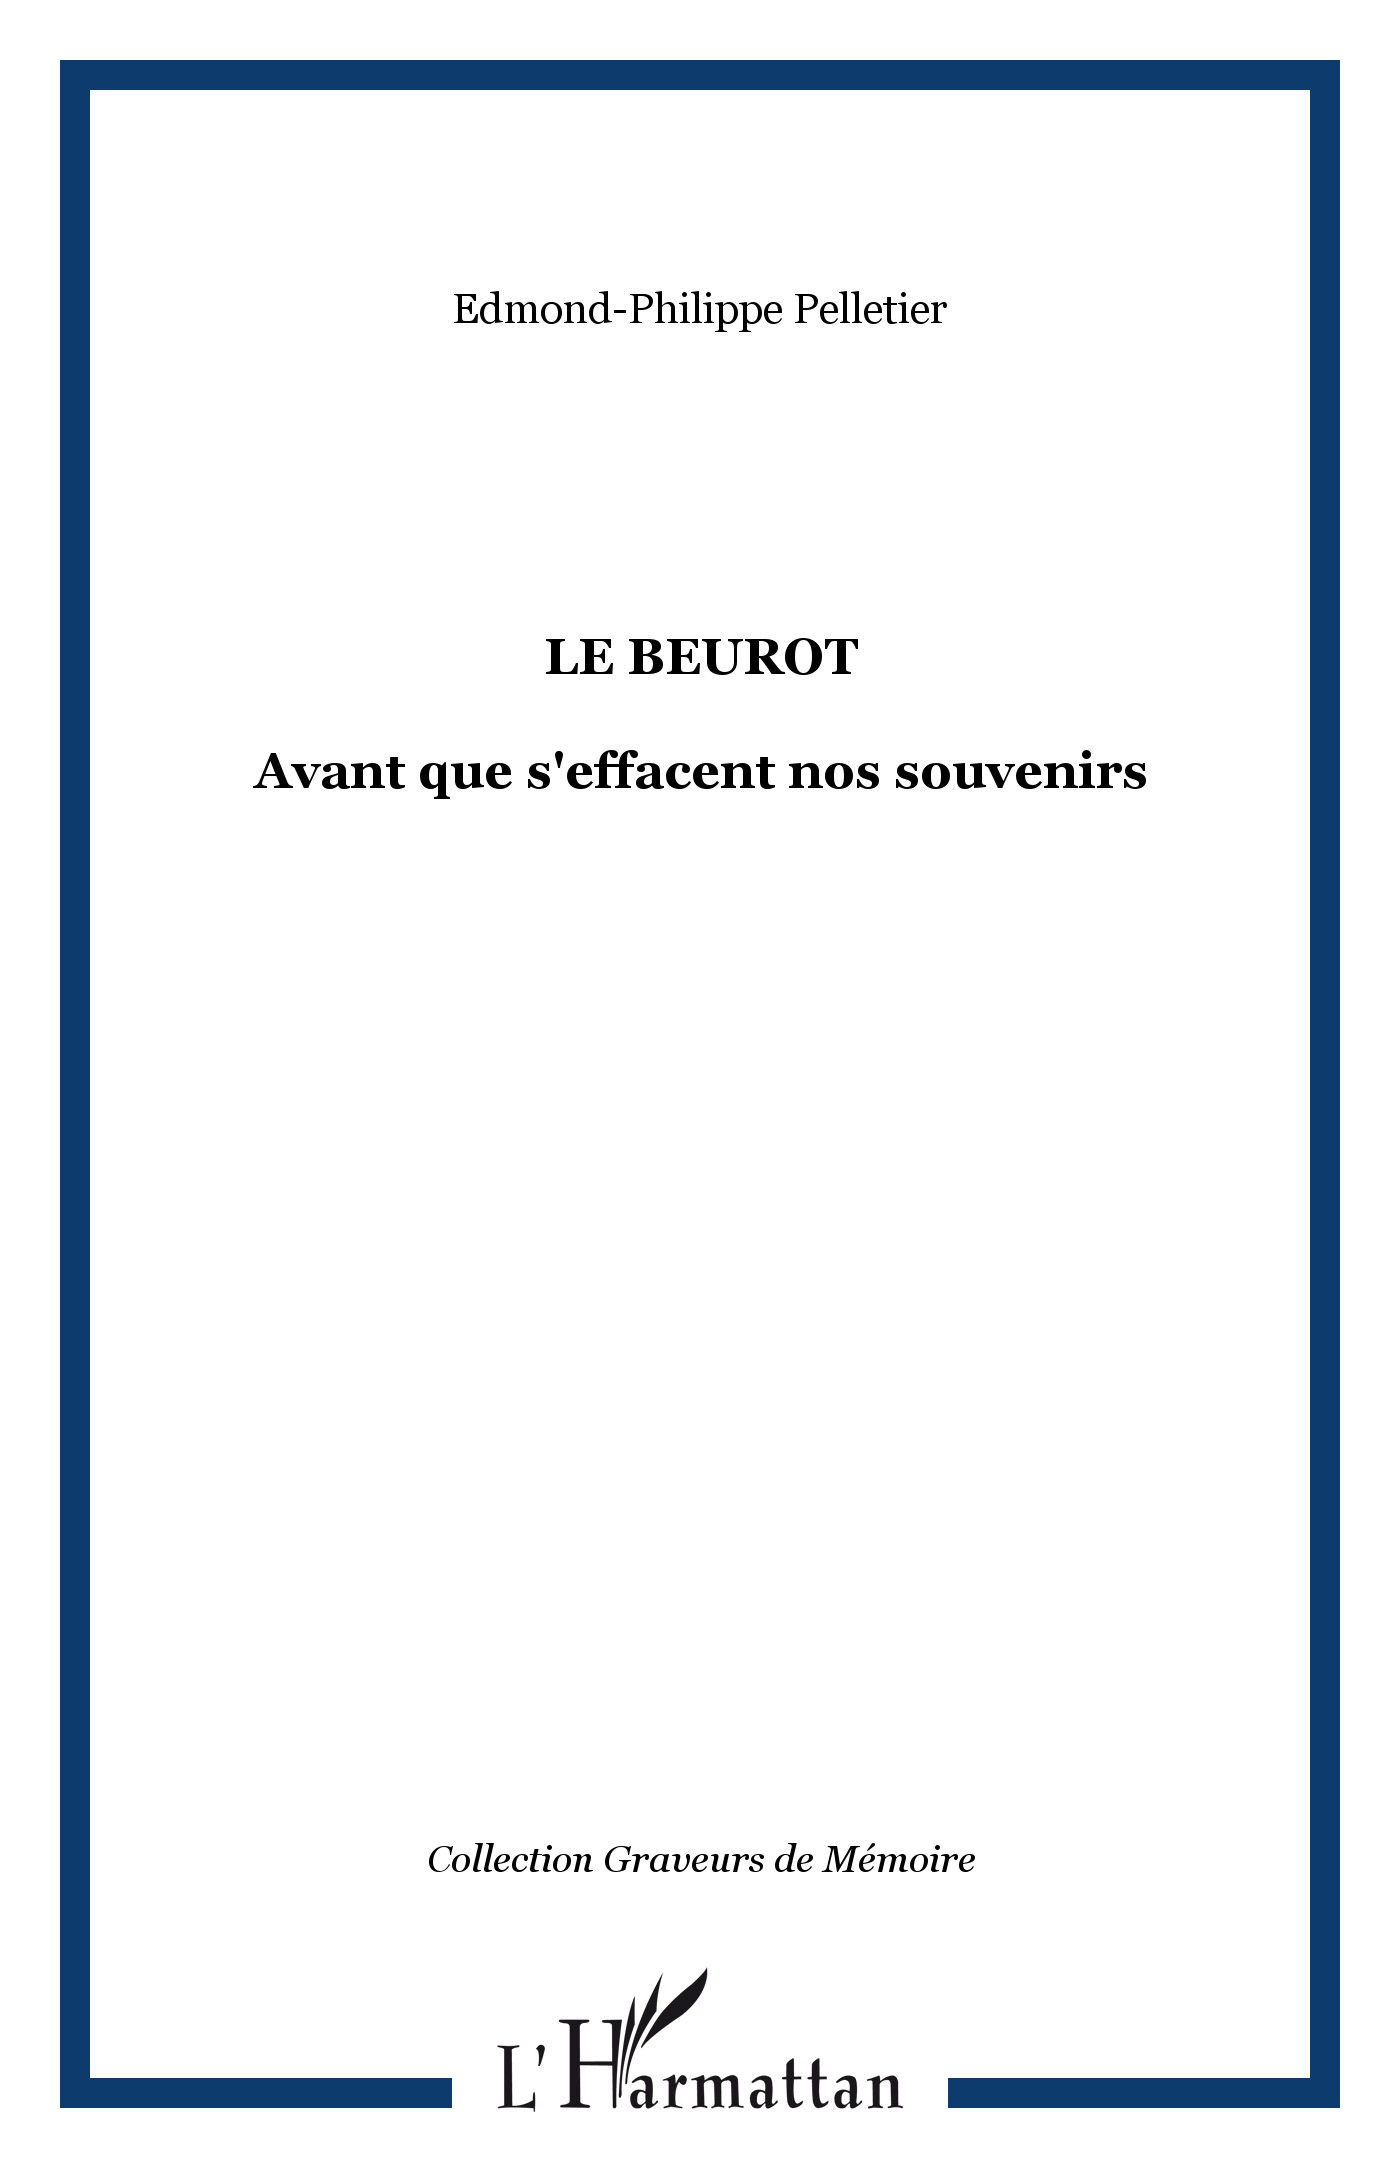 Le Beurot